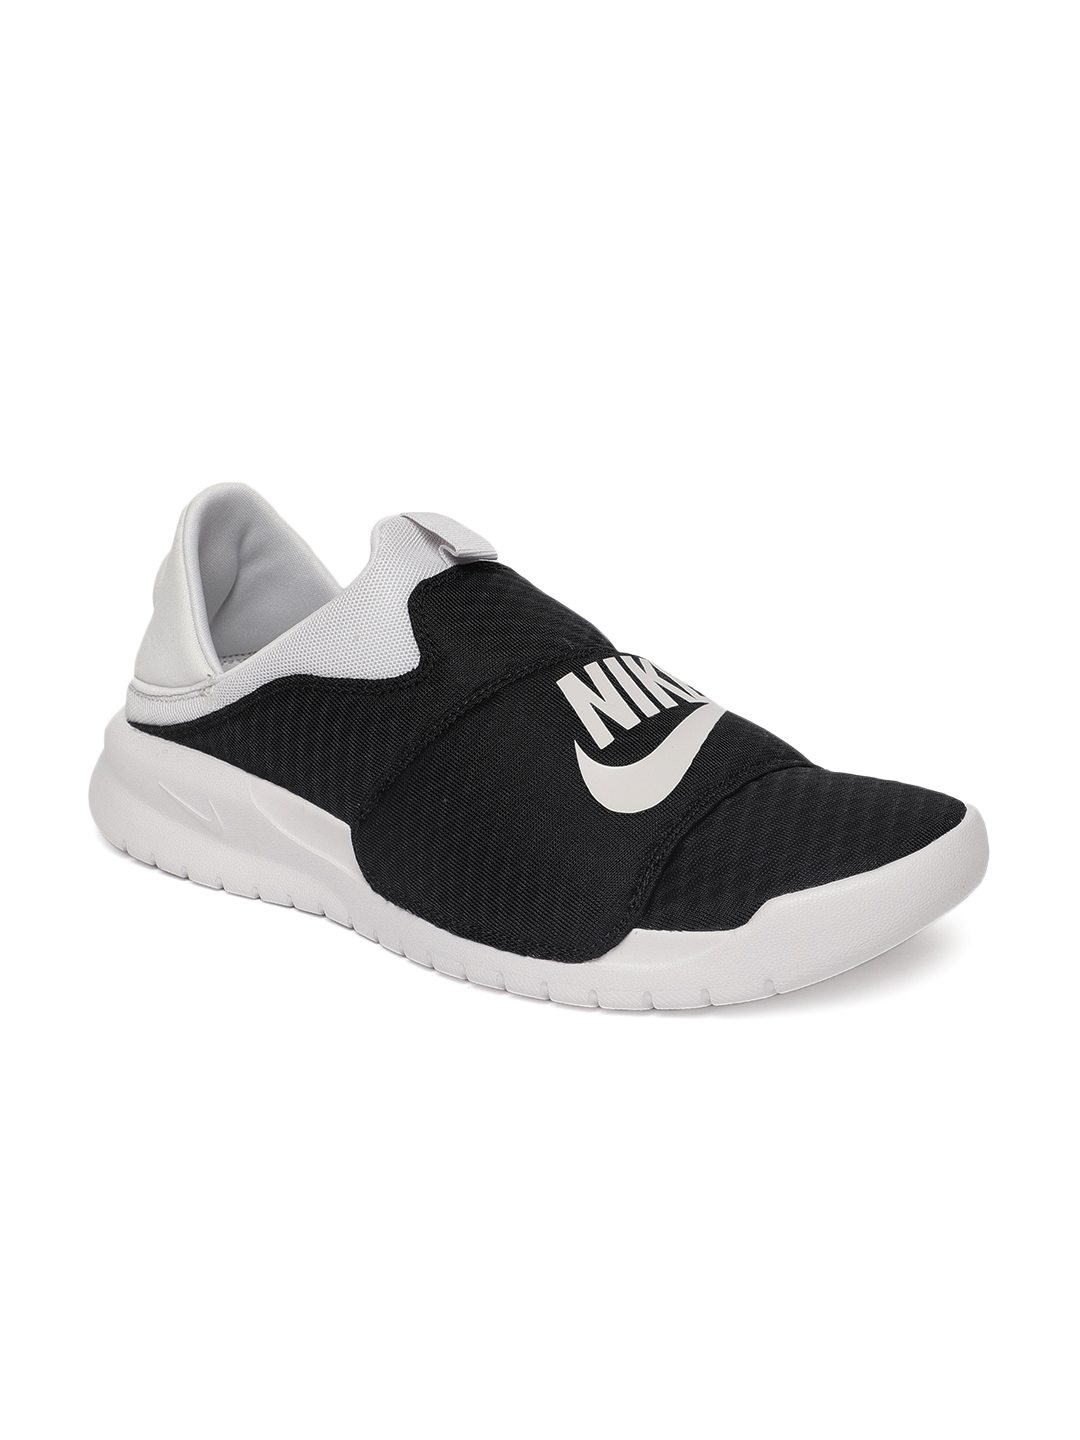 4d8d88fed568 Buy Nike Men Black BENASSI Slip On Sneakers - Casual Shoes for Men ...